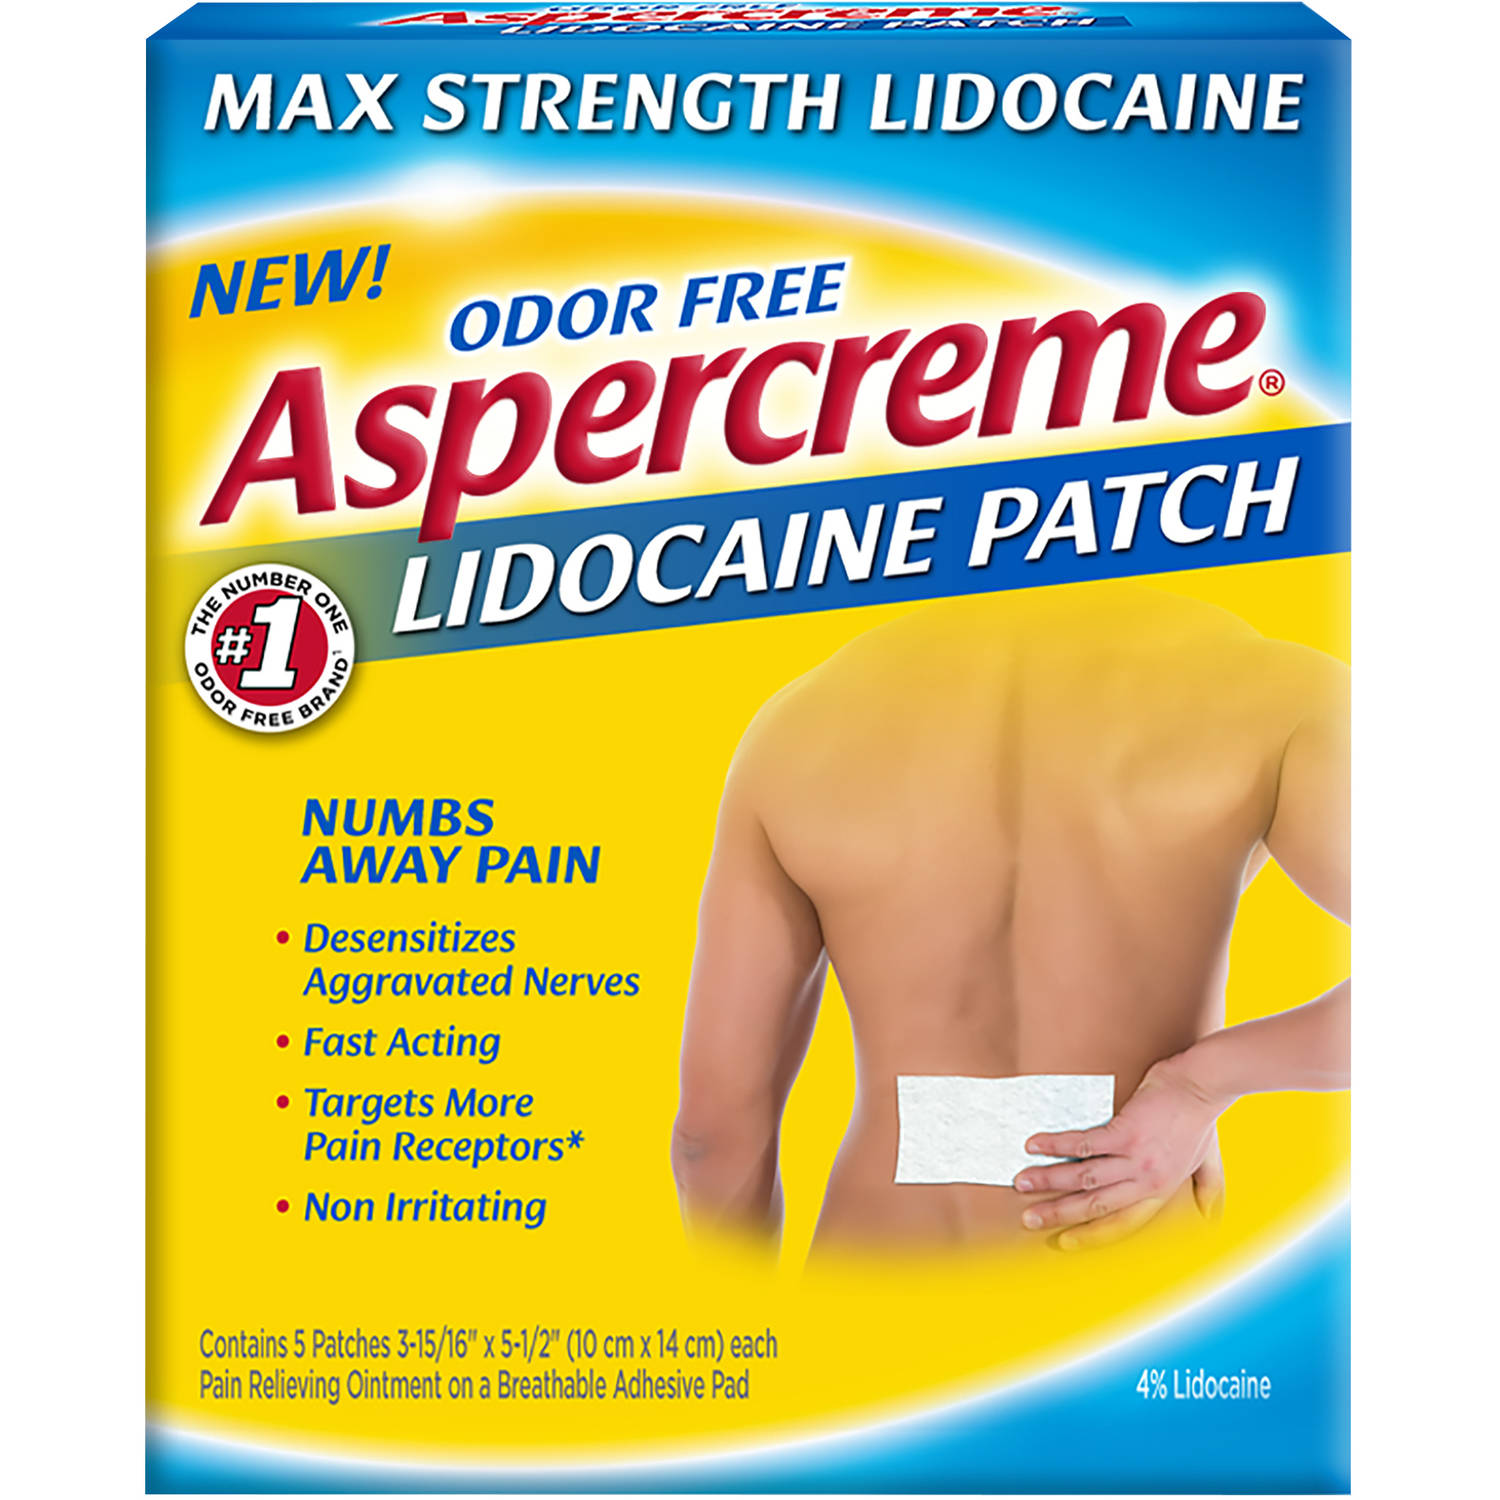 Aspercreme Lidocaine Patches, 5 count